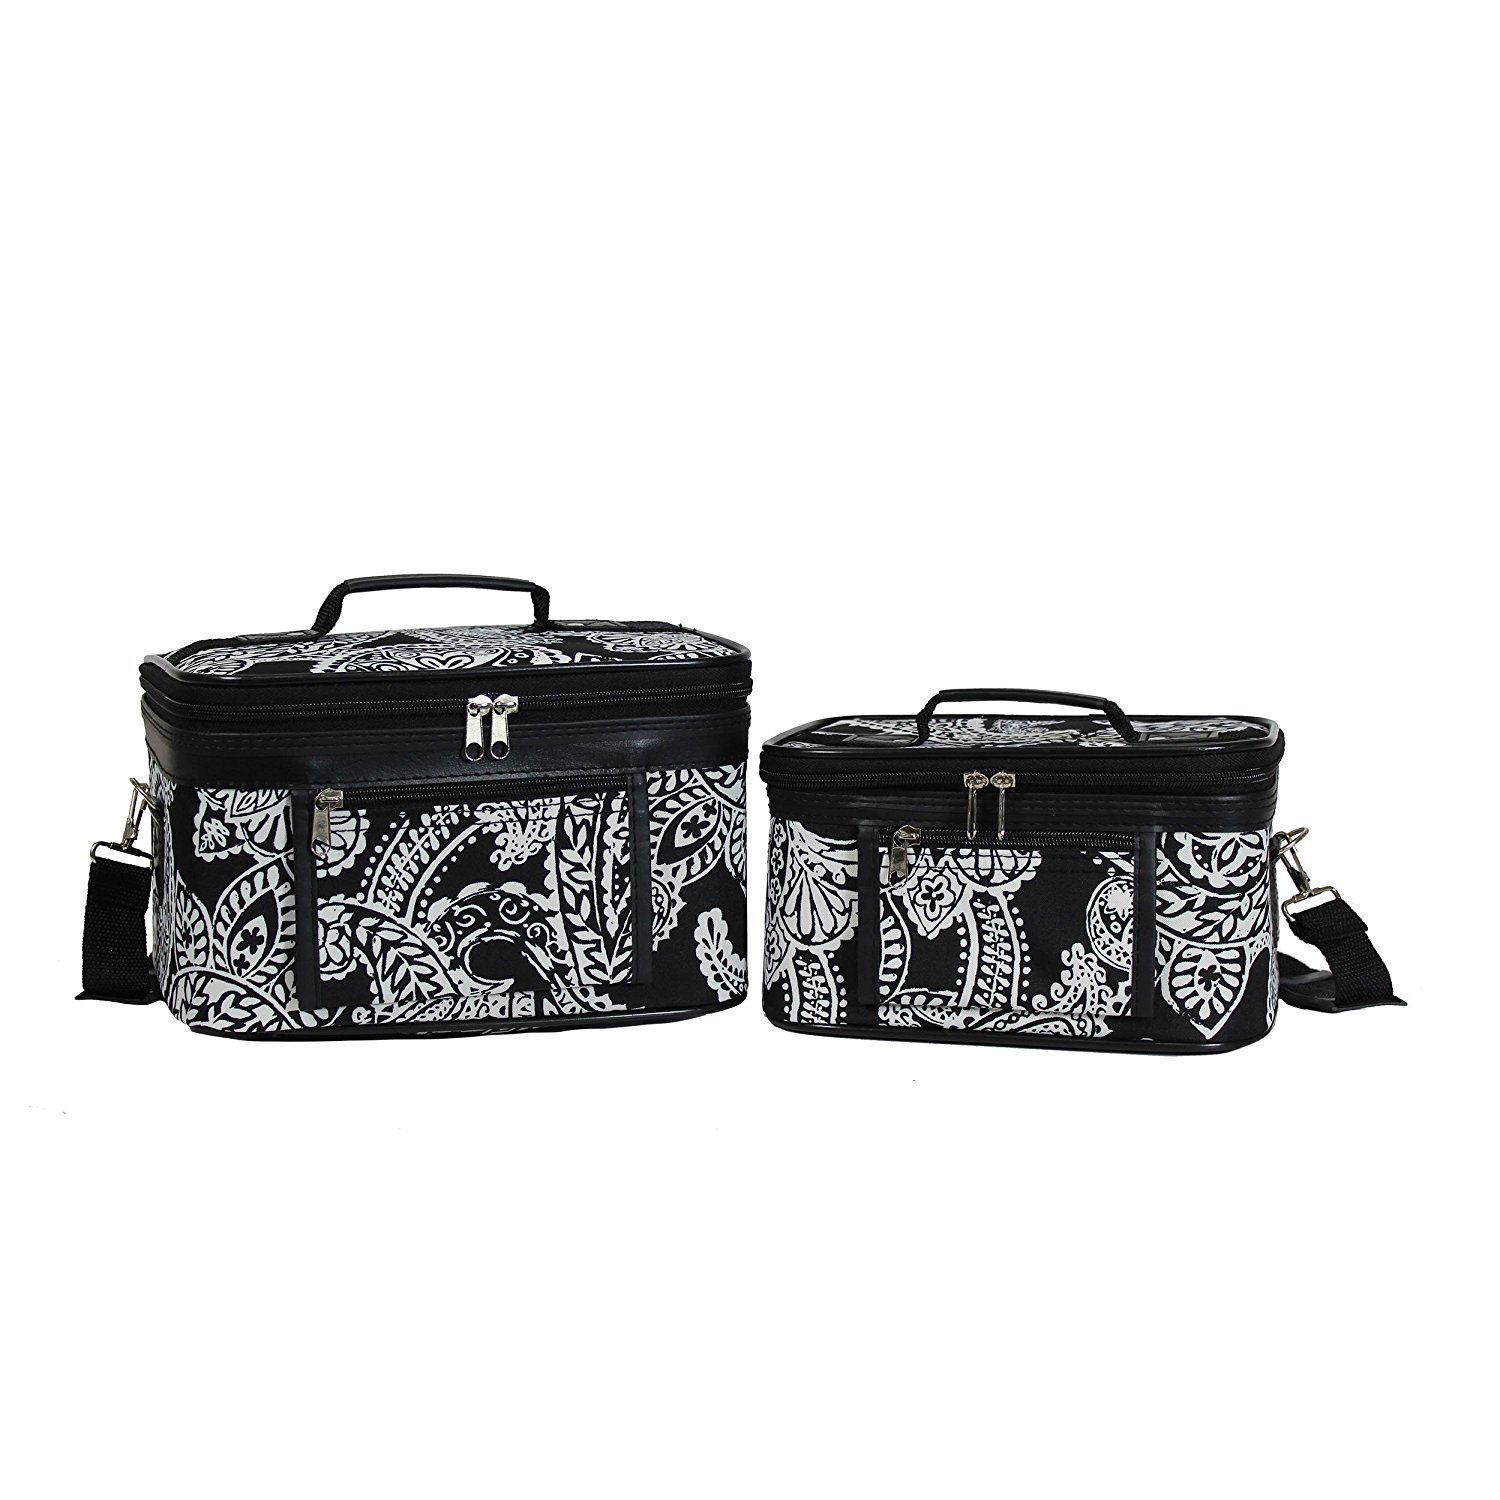 beYOUnique Cosmetic Bag Black White Paisley 2 Piece Weekender Video Games - 9 Inch | 7 inch Set